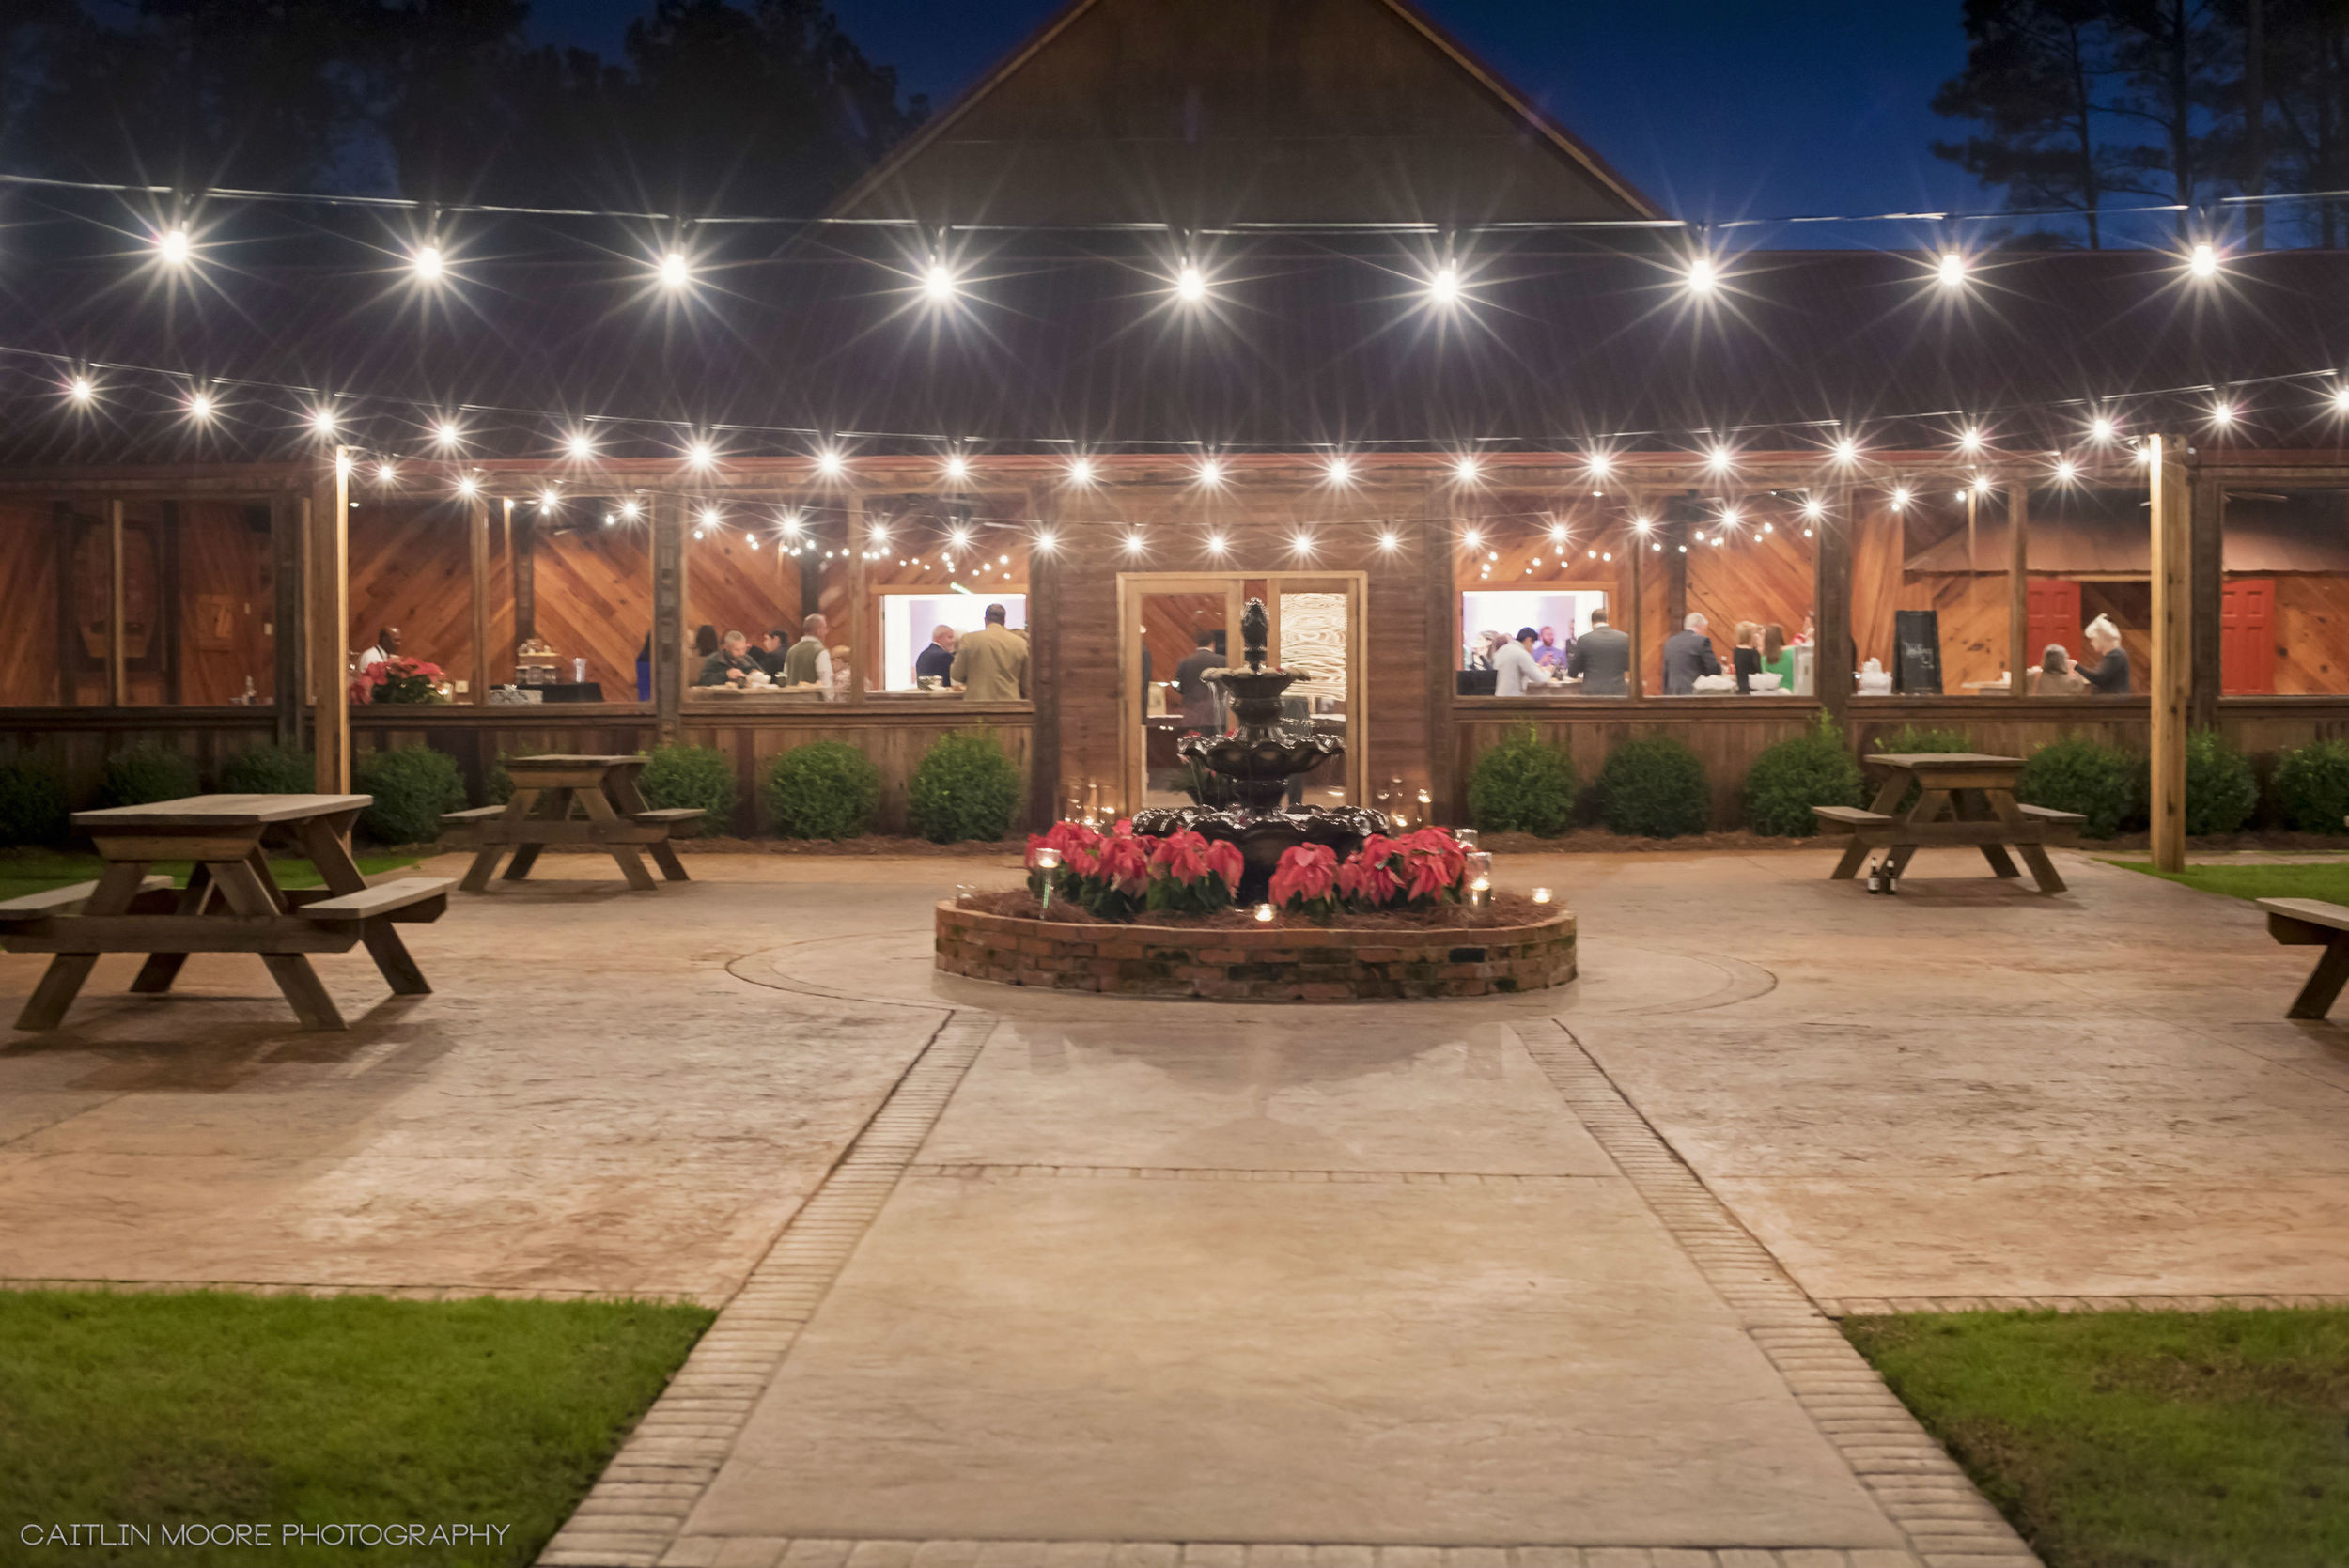 The Courtyard at Hidden Acres w/ New Bistro Lighting | Caitlin Moore Photography